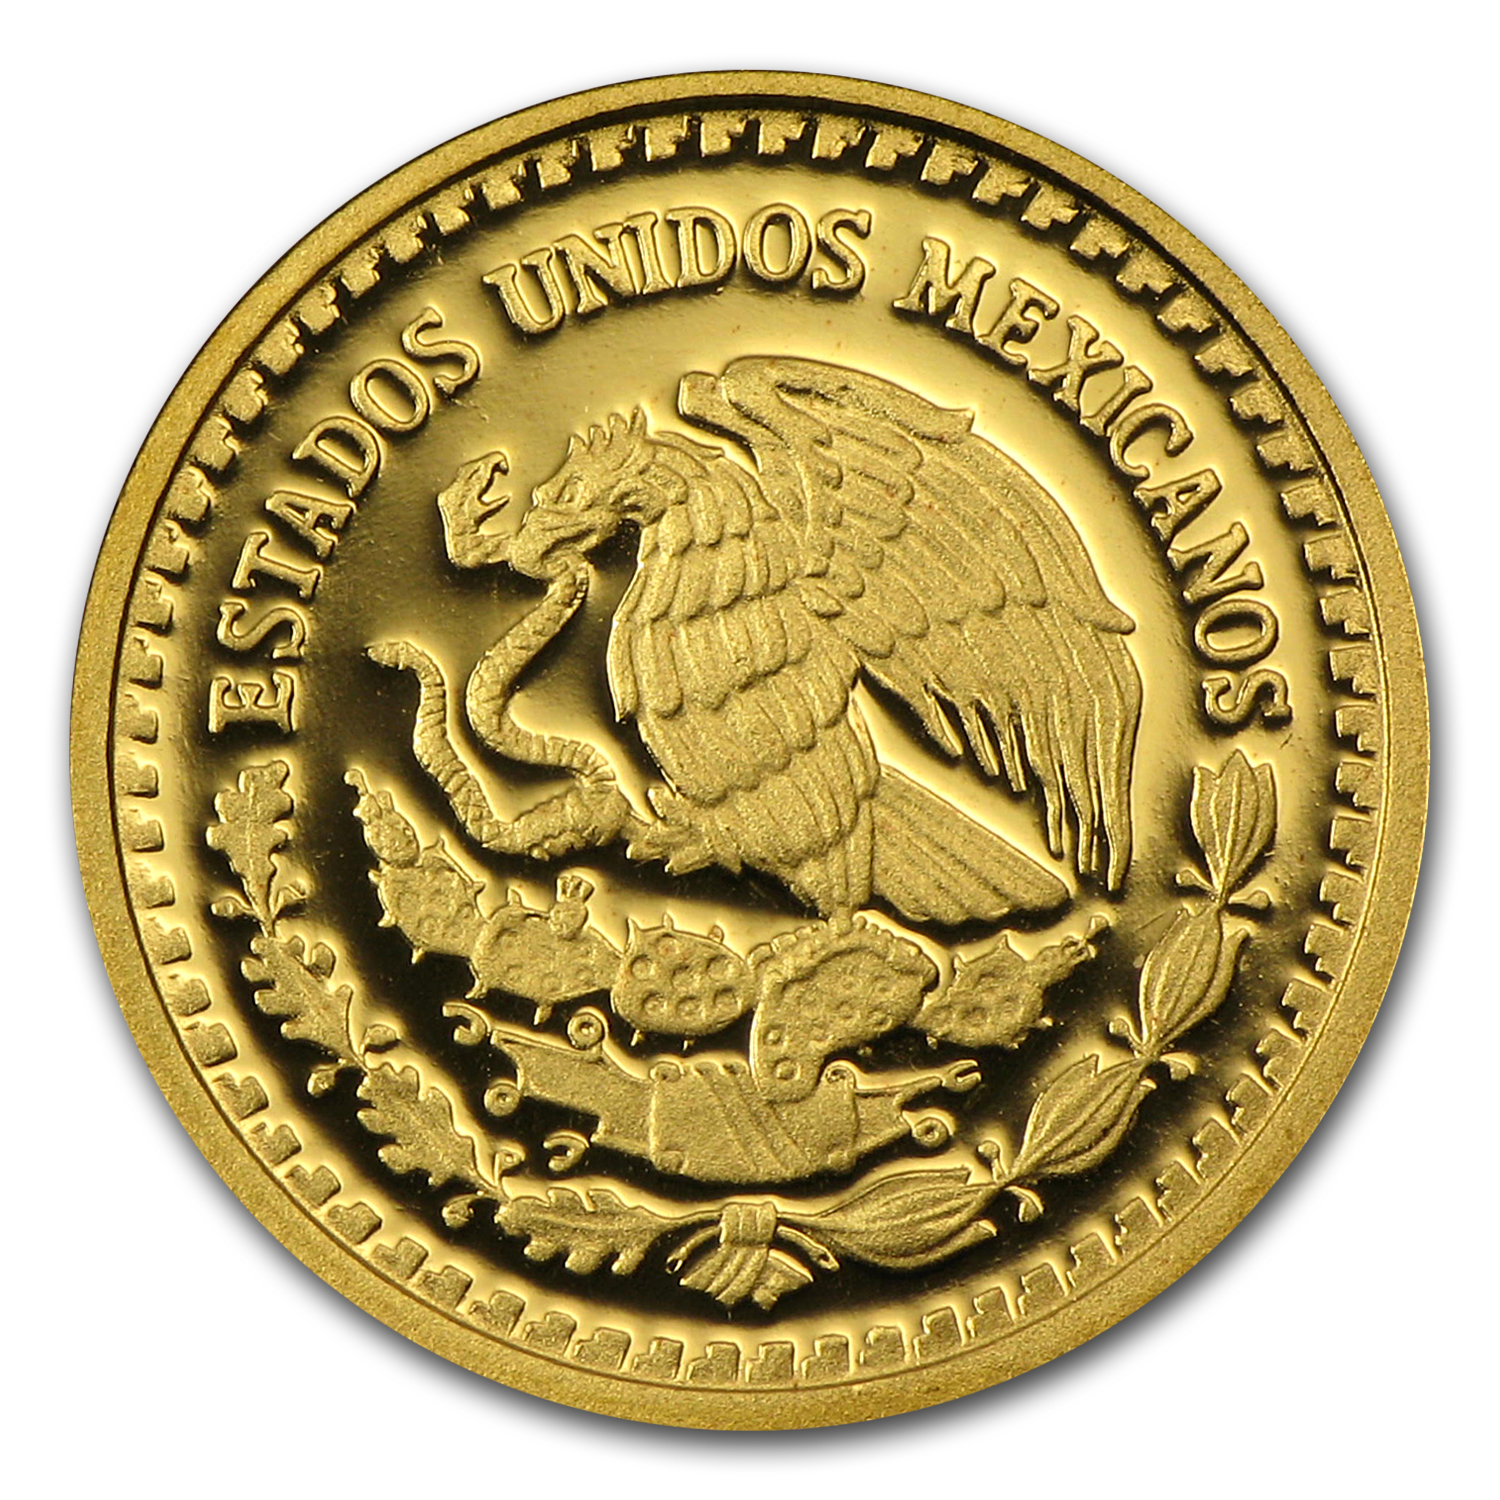 2009 Mexico 1/10 oz Proof Gold Libertad